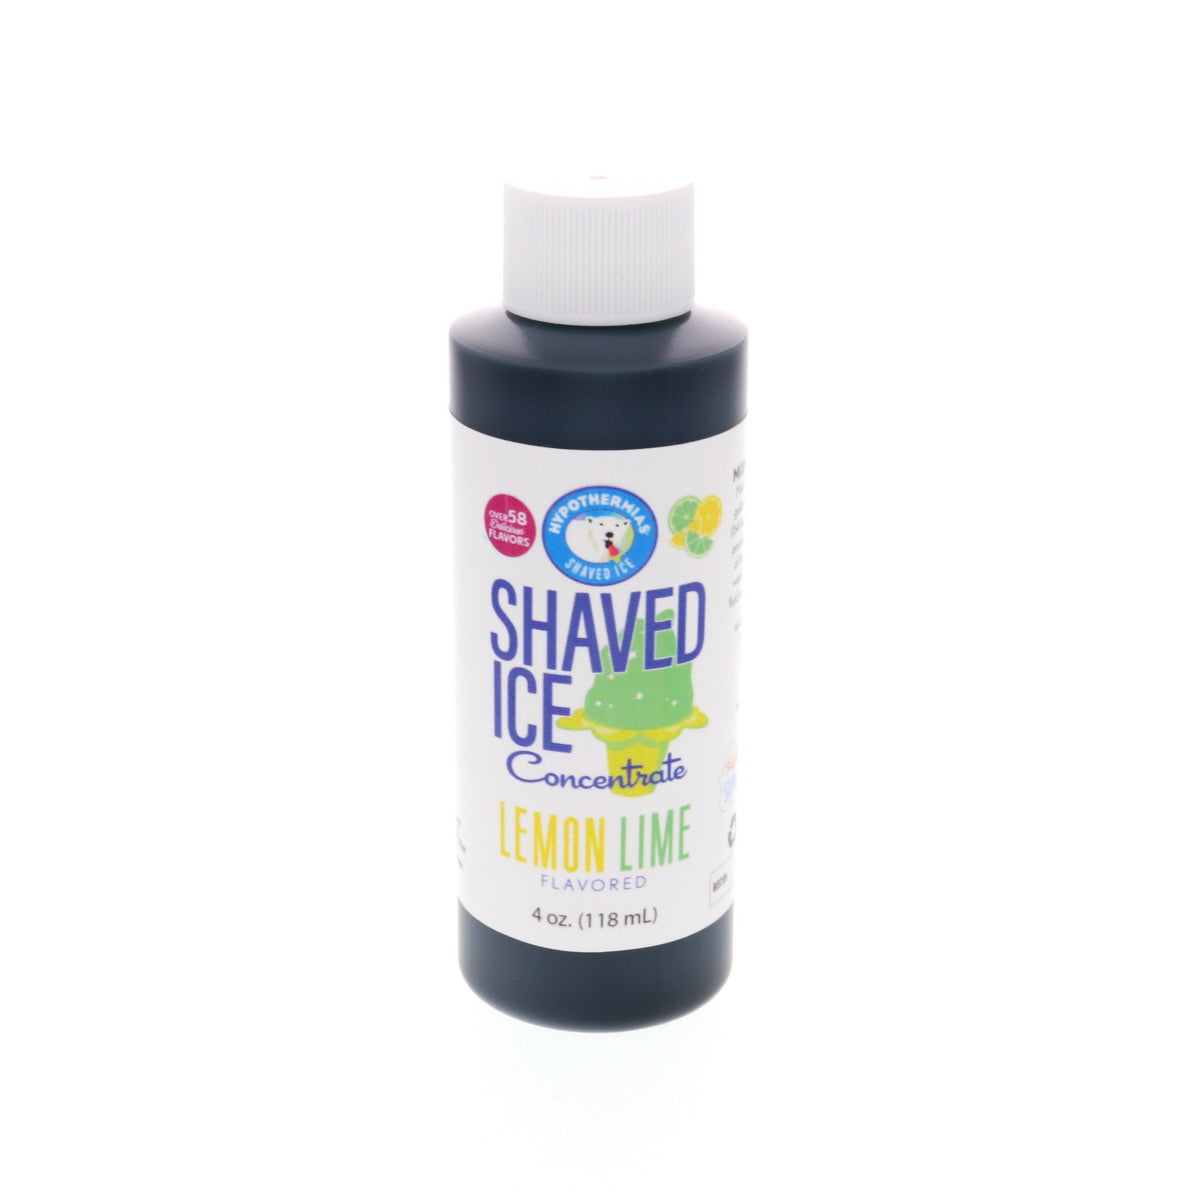 Lemon Lime Hawaiian shaved ice flavor syrup concentrate 4 Fl Oz